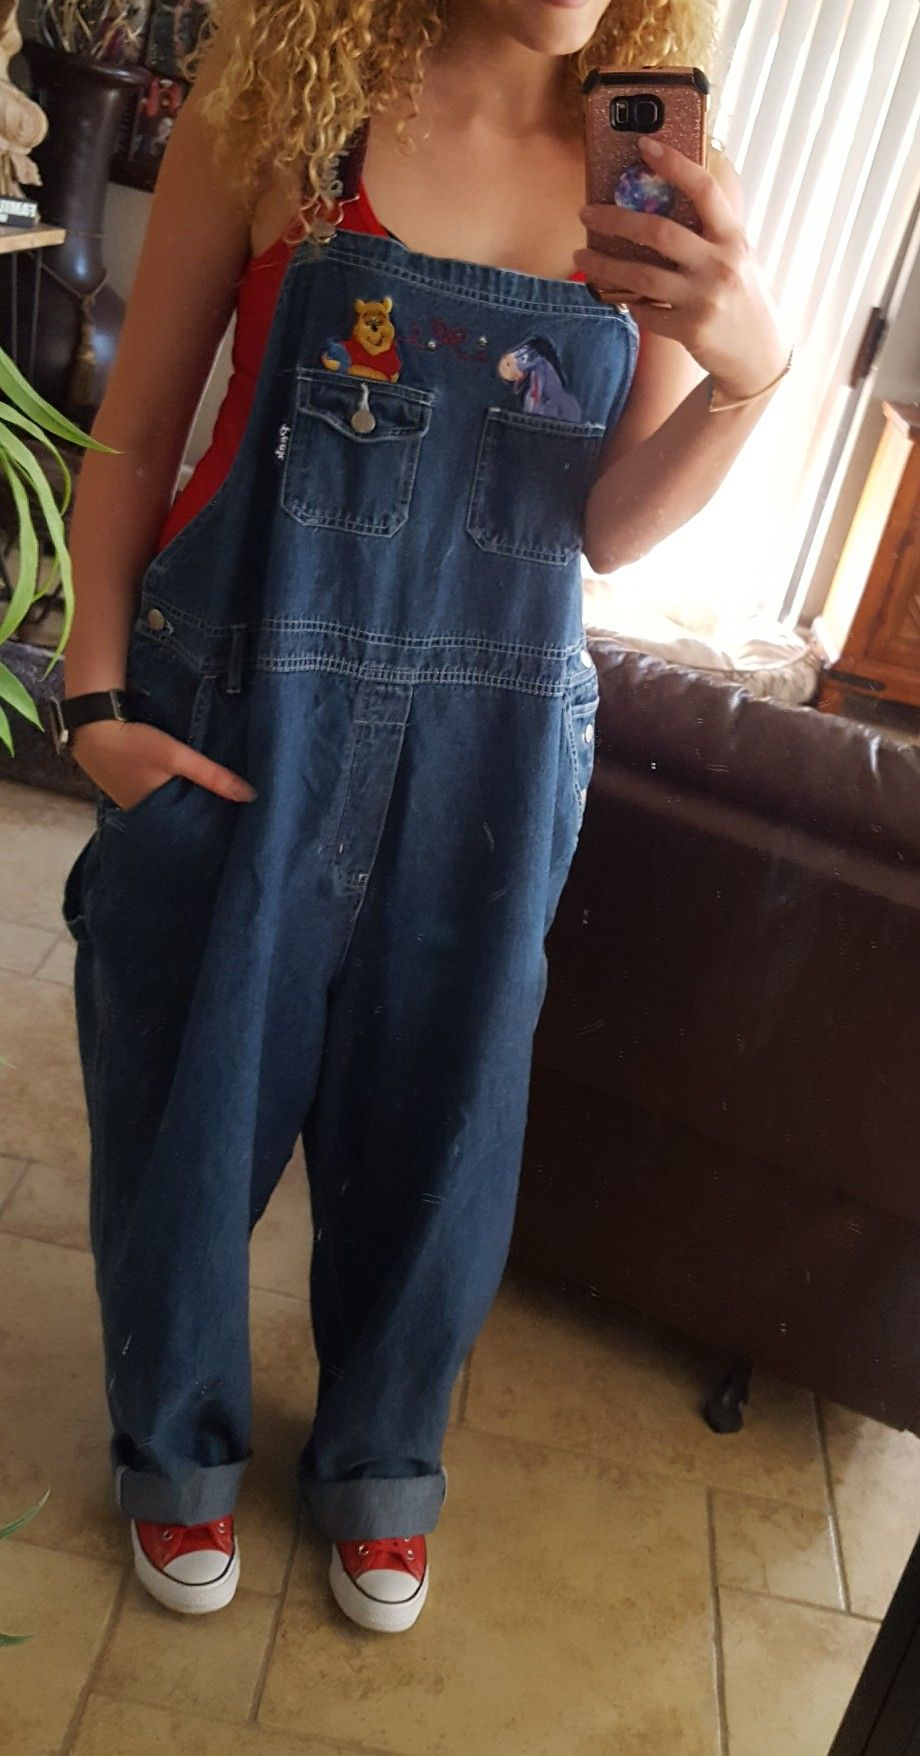 f1e8d07e61c 90s retro and vintage denim oversized Winnie the Pooh denim overalls (super  baggy) paired with a red tank top and some red leather converse sneakers.